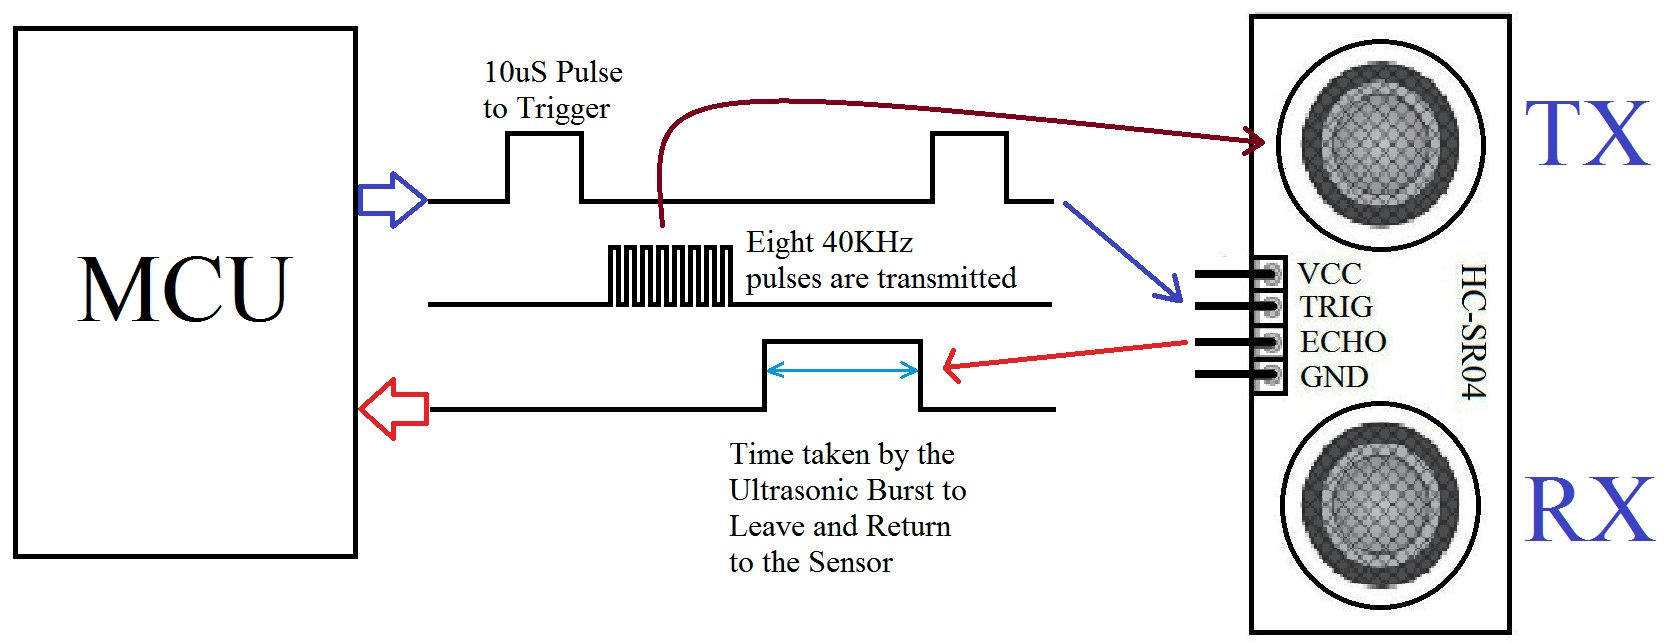 Interfacing Hc Sr04 Ultrasonic Sensor With Pic Microcontroller S Meter Circuit Diagram Working Of